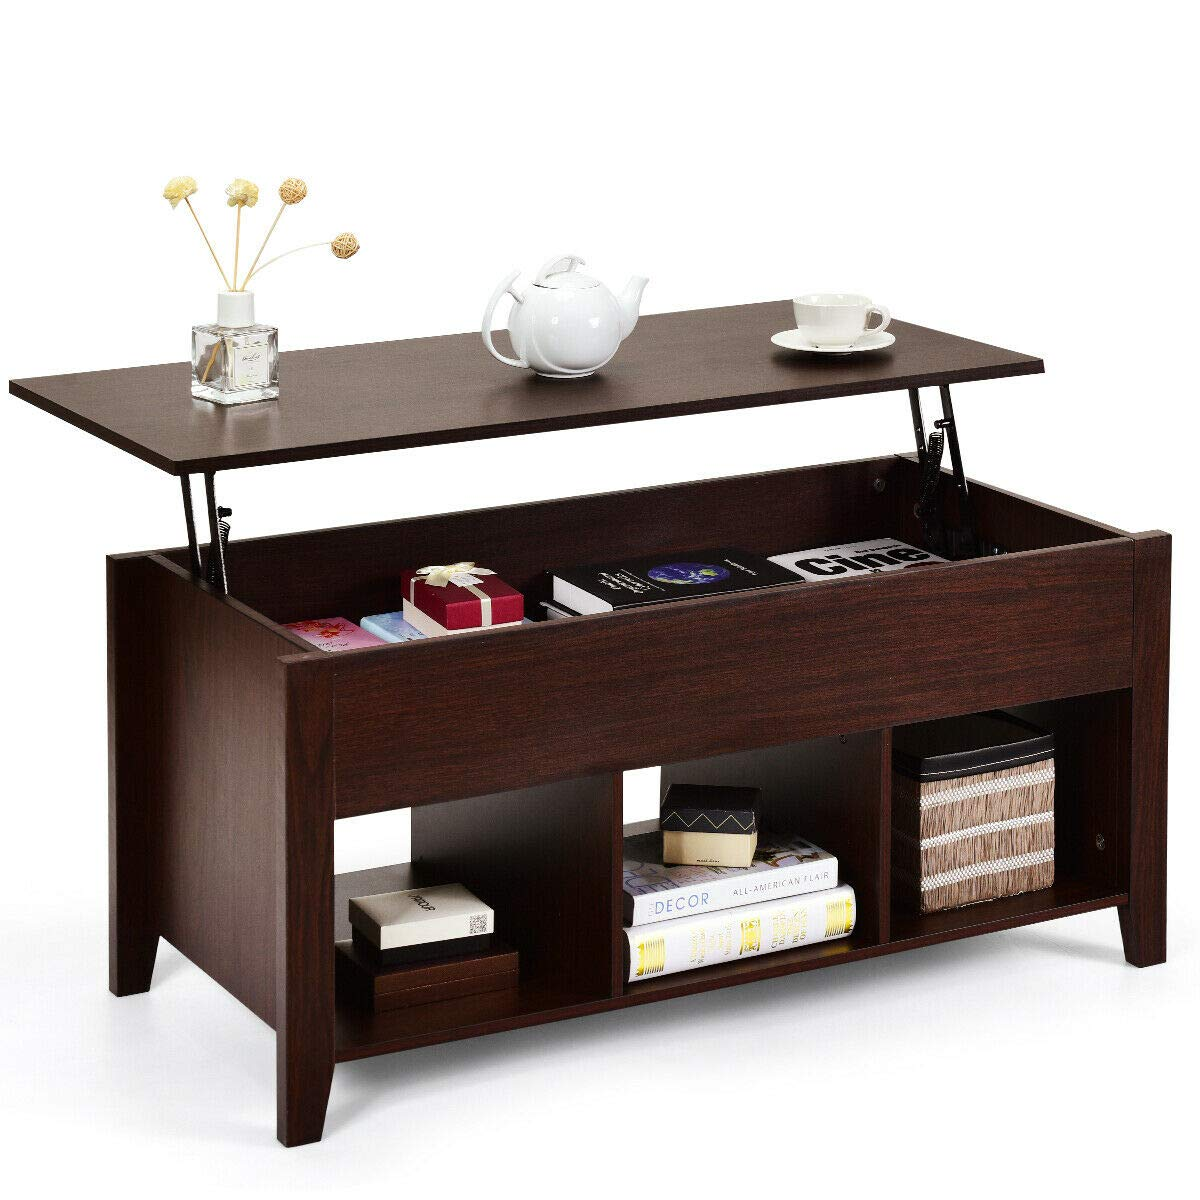 Tangkula Lift Top Coffee Table, Wood Home Living Room Modern Lift Top Storage Coffee Table w/Hidden Compartment Lift Tabletop Furniture (Brown) by Tangkula